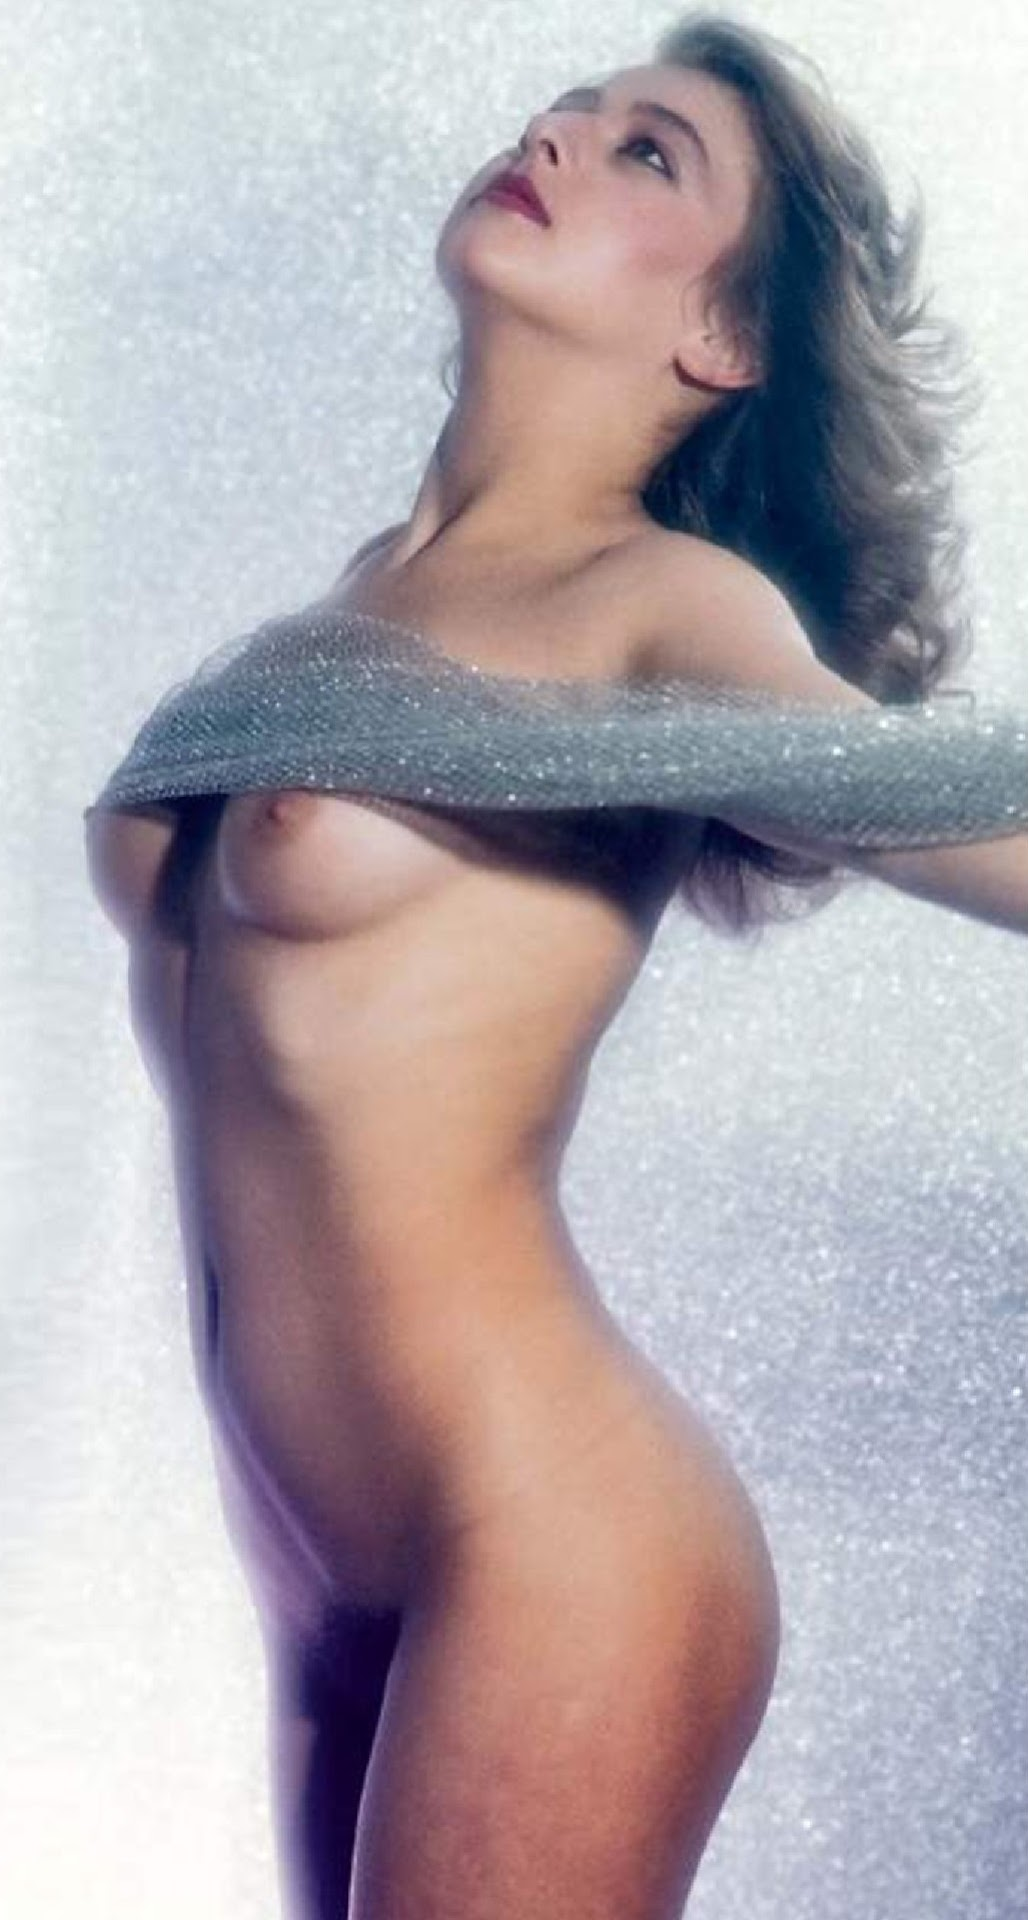 Anabel Alonso Topless boob facts that will blow you away